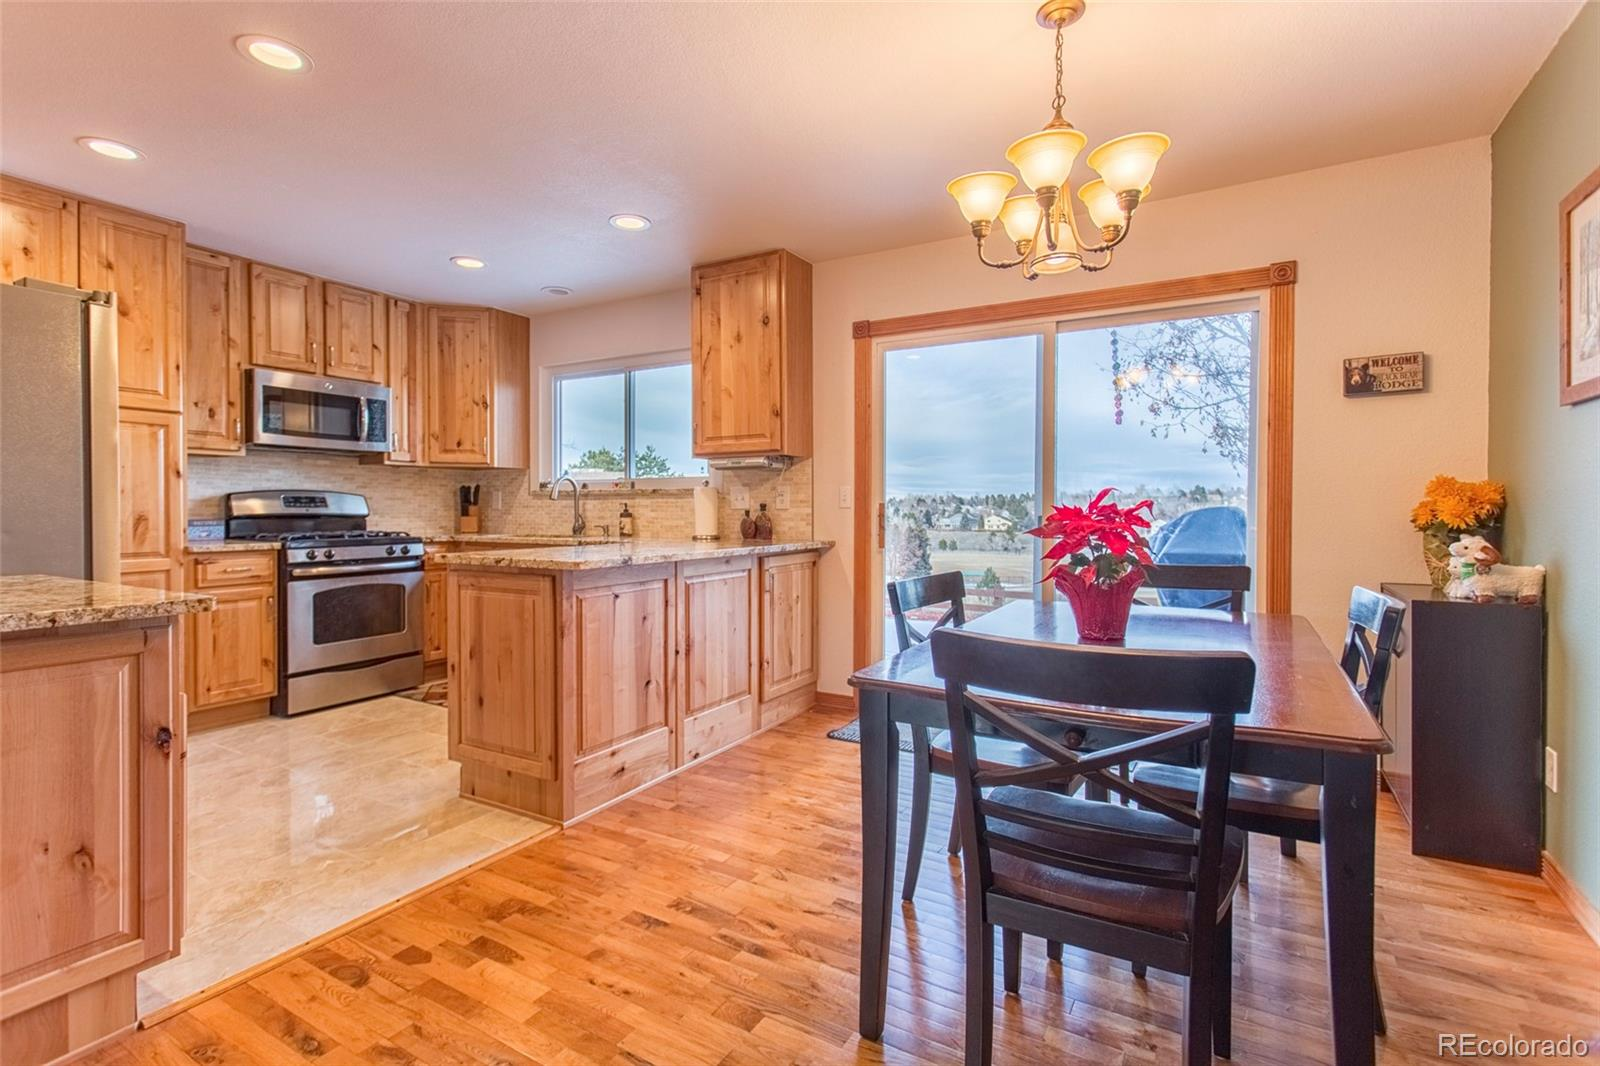 MLS# 8627962 - 19 - 431 Snowy Owl Place, Highlands Ranch, CO 80126